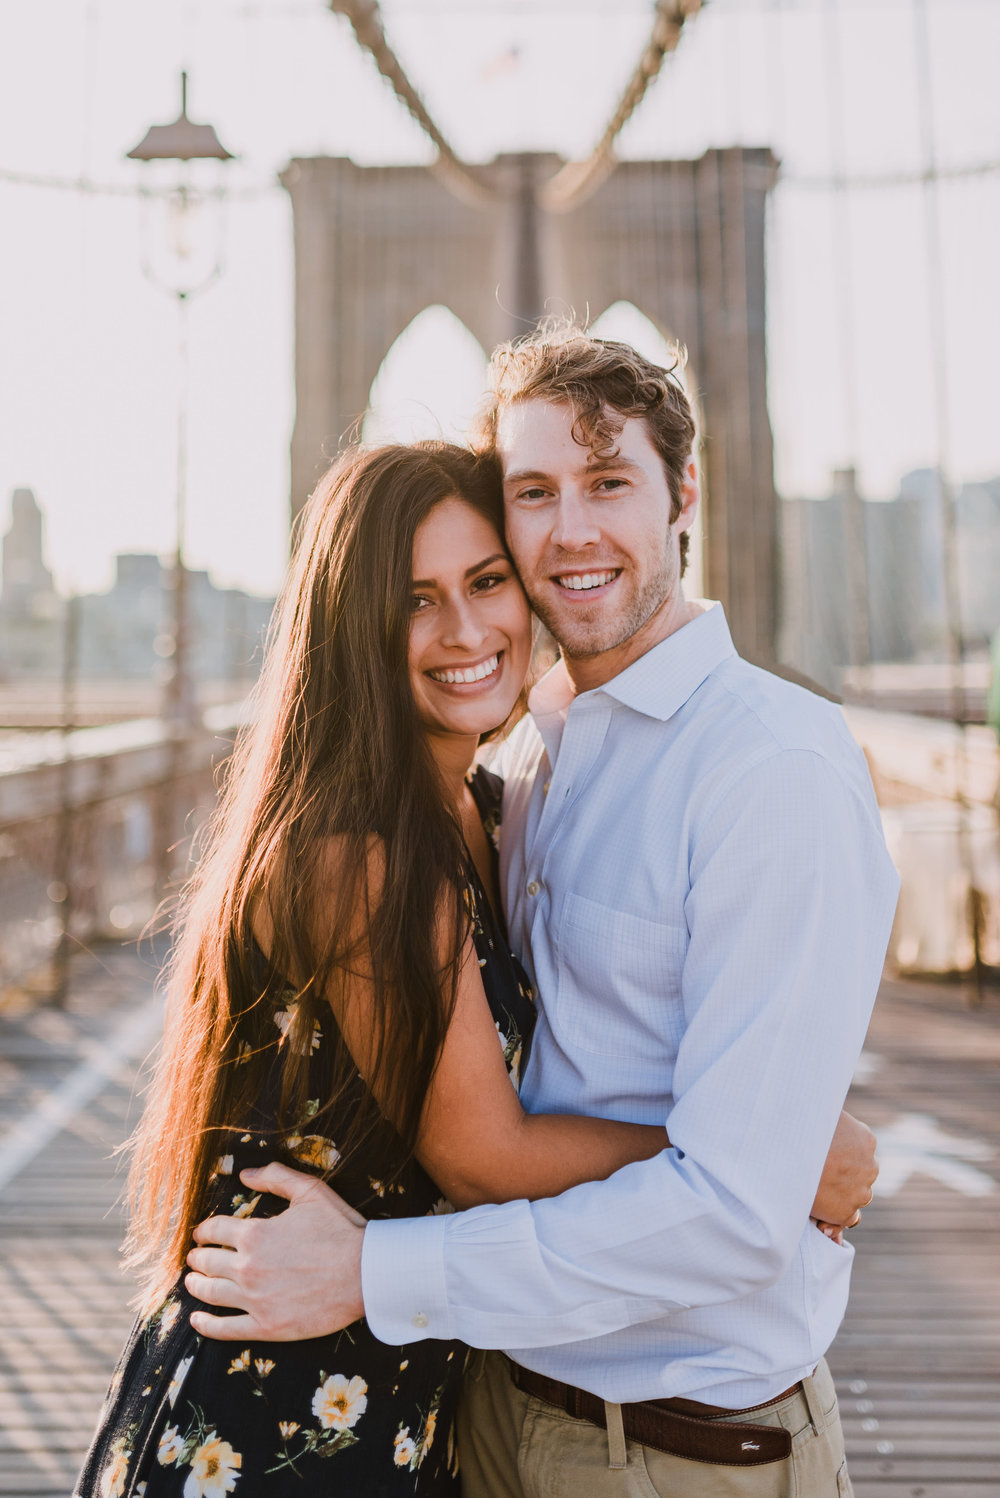 brooklyn bridge engagement shoot, couple shoot nyc, nyc wedding photographer, destination wedding photographer, documentary wedding photographer in nyc (14).jpg